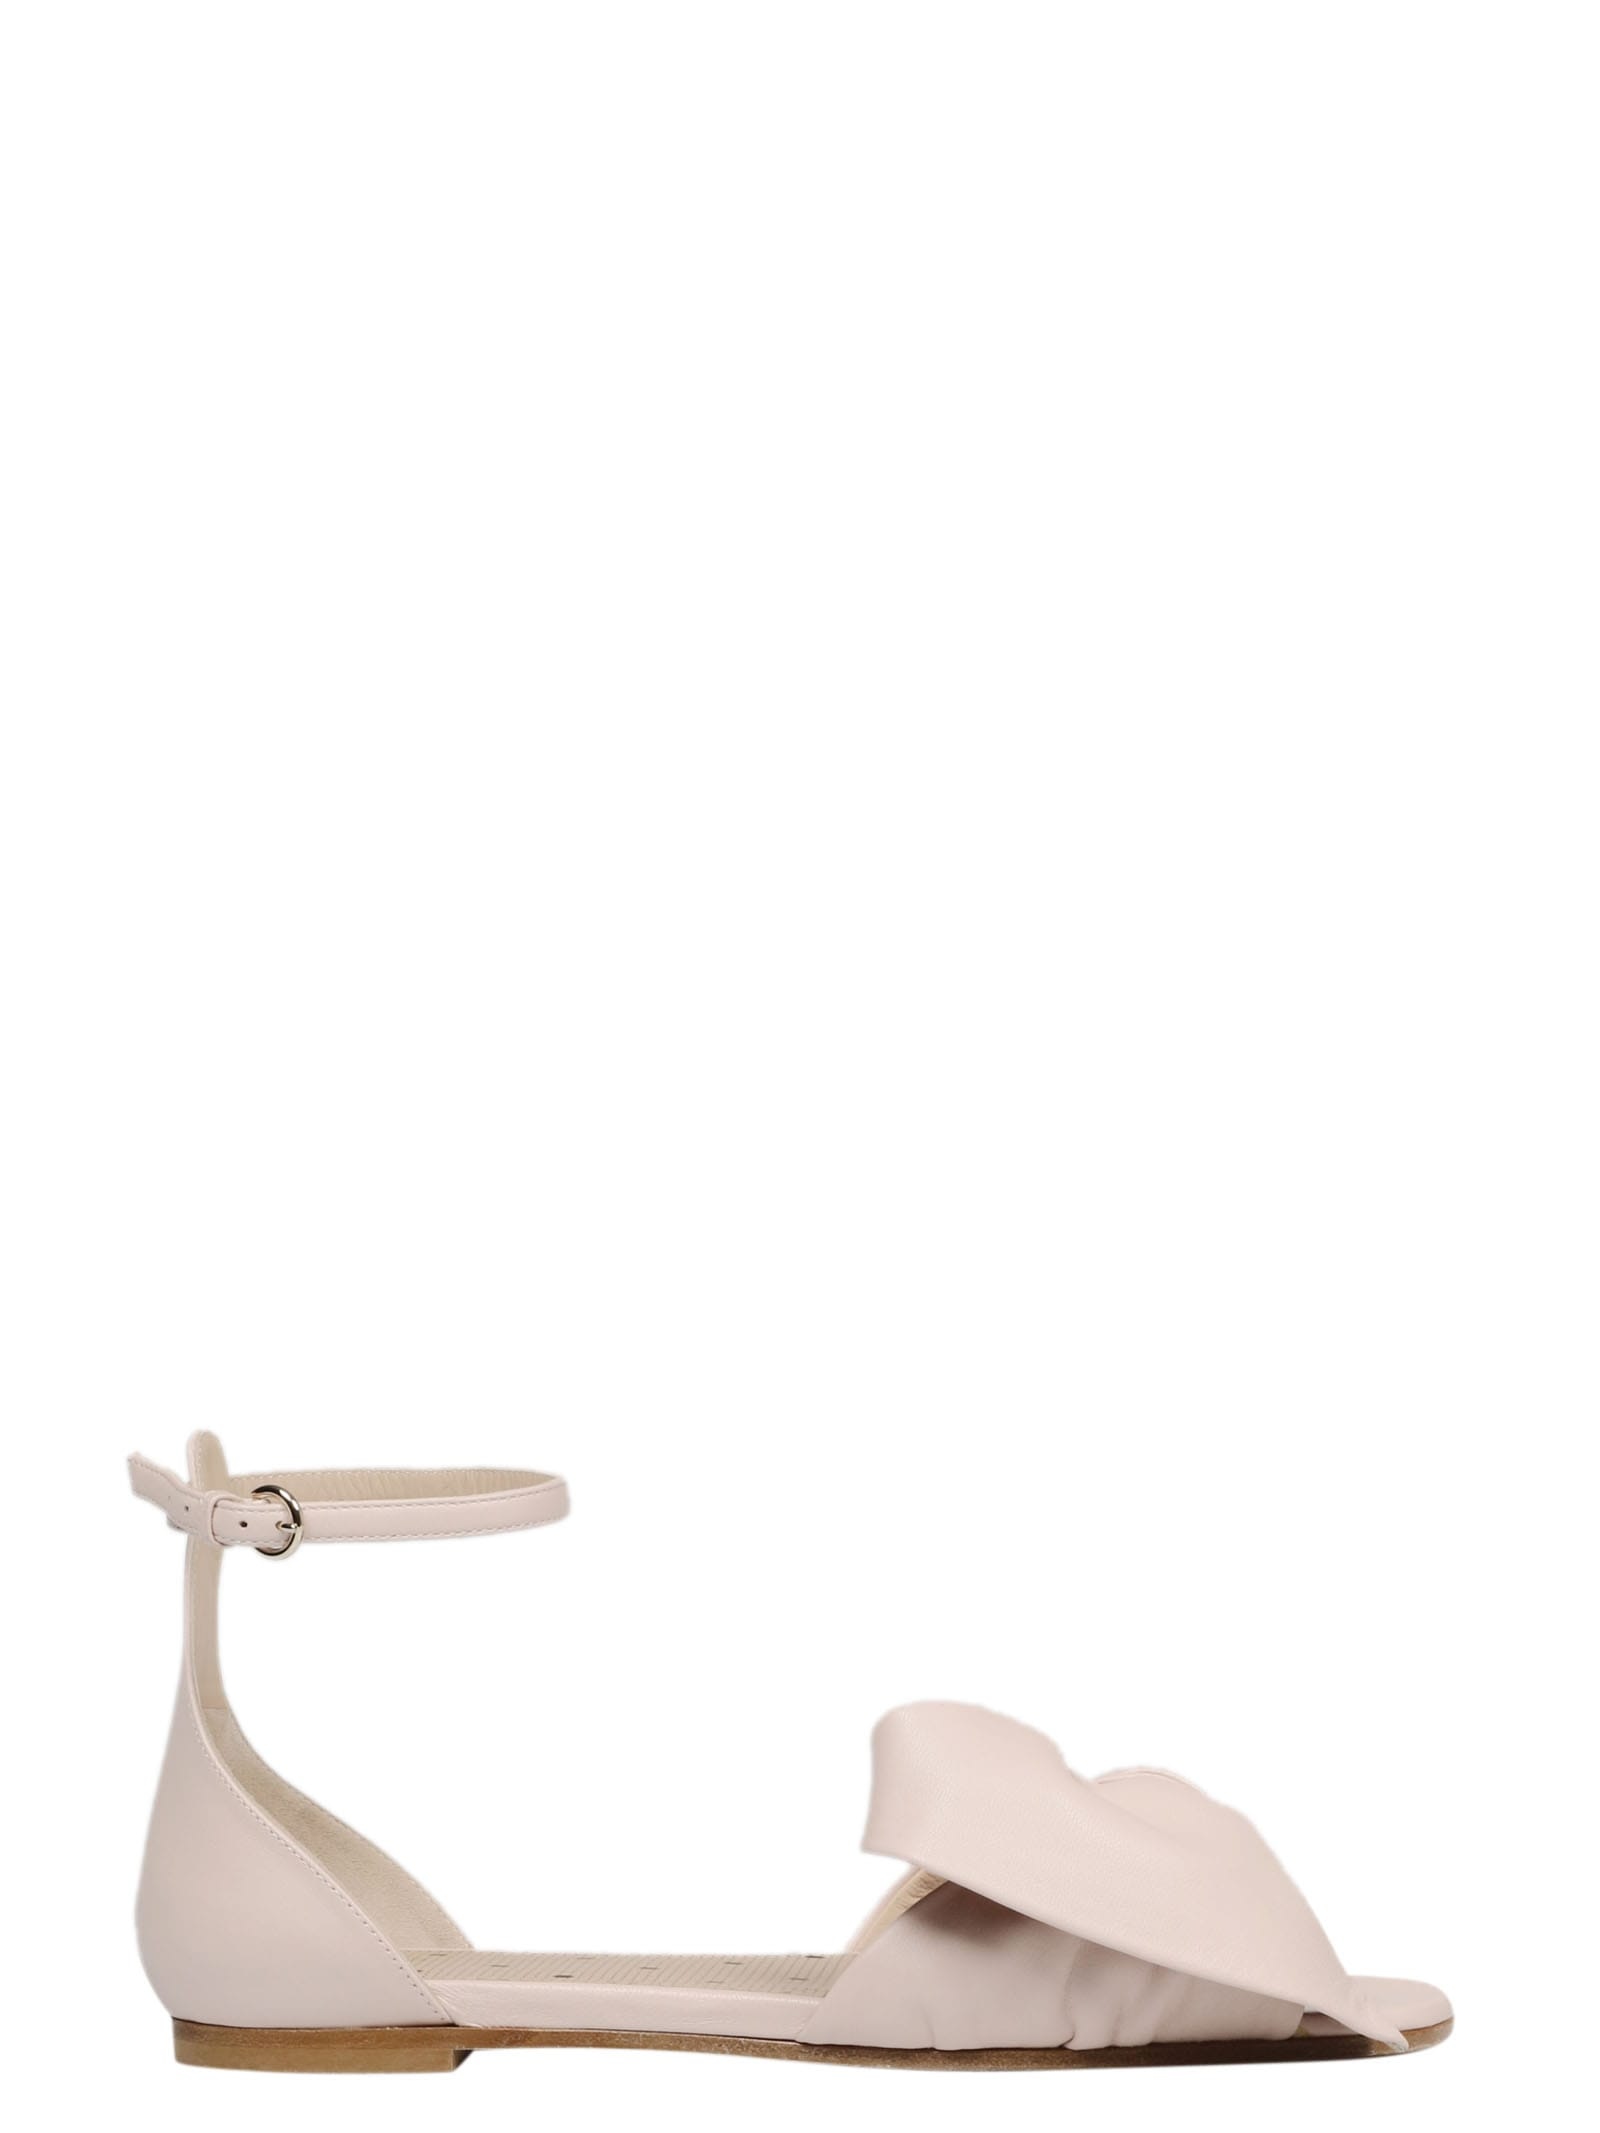 Red Valentino Leathers BOW LEATHER SANDAL